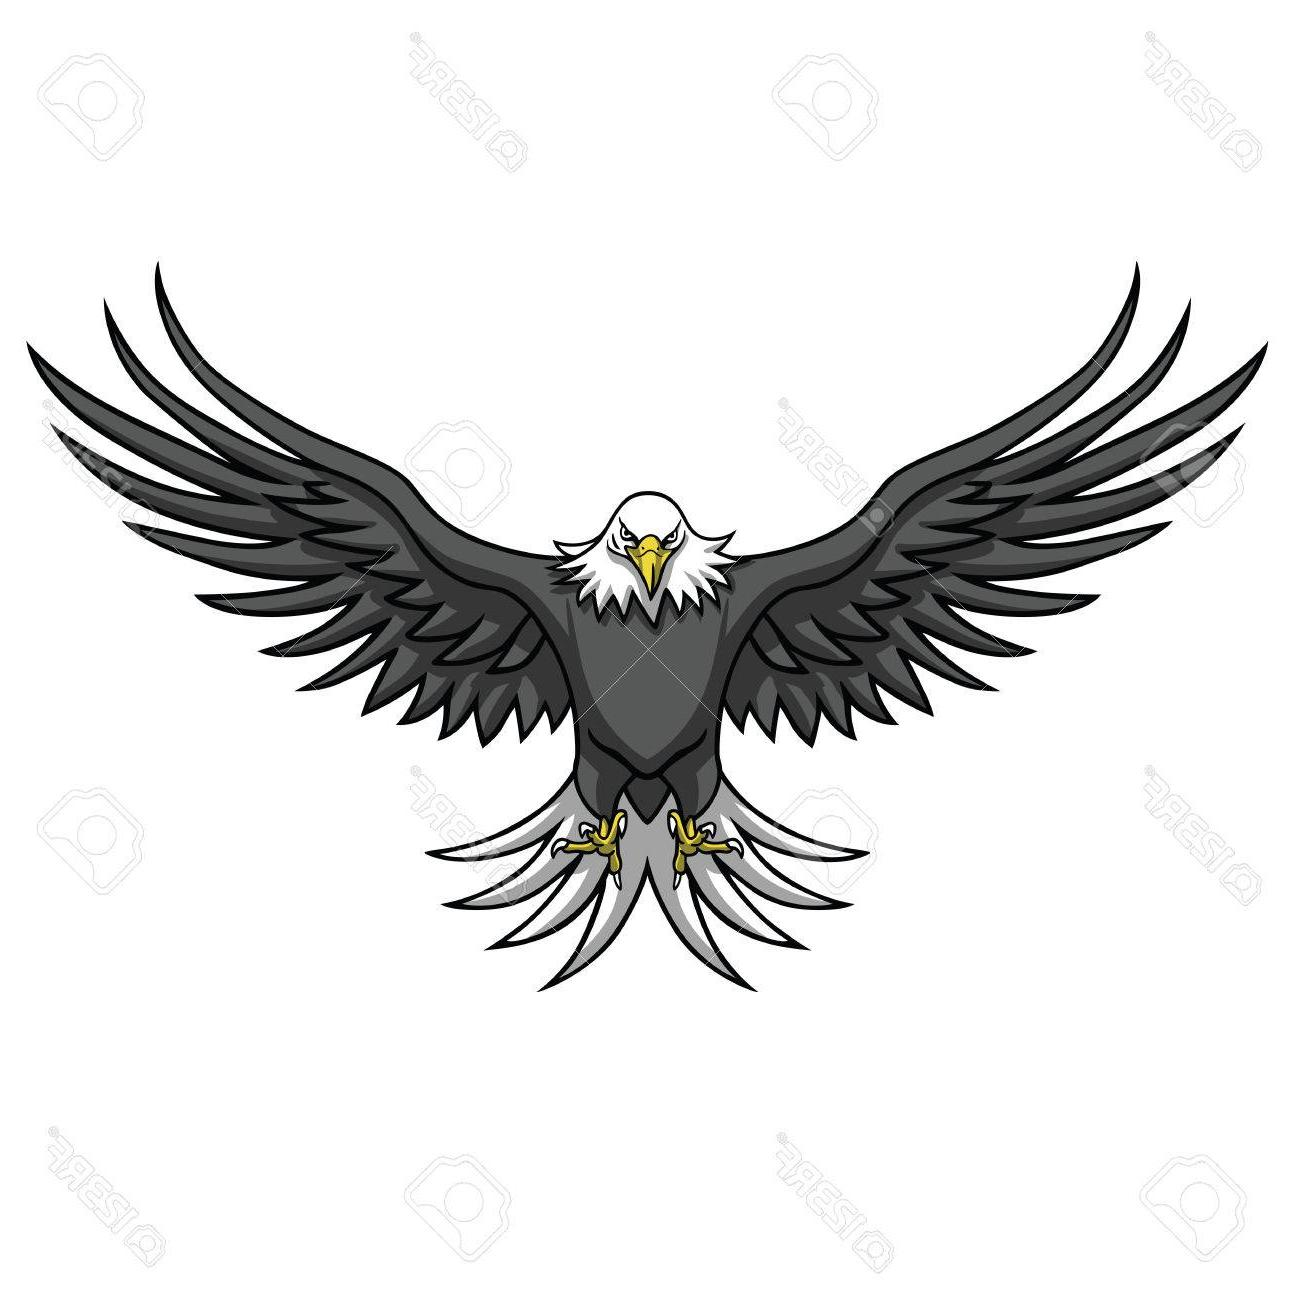 Best Eagle Wings Spread Clipart Black And White Vector.